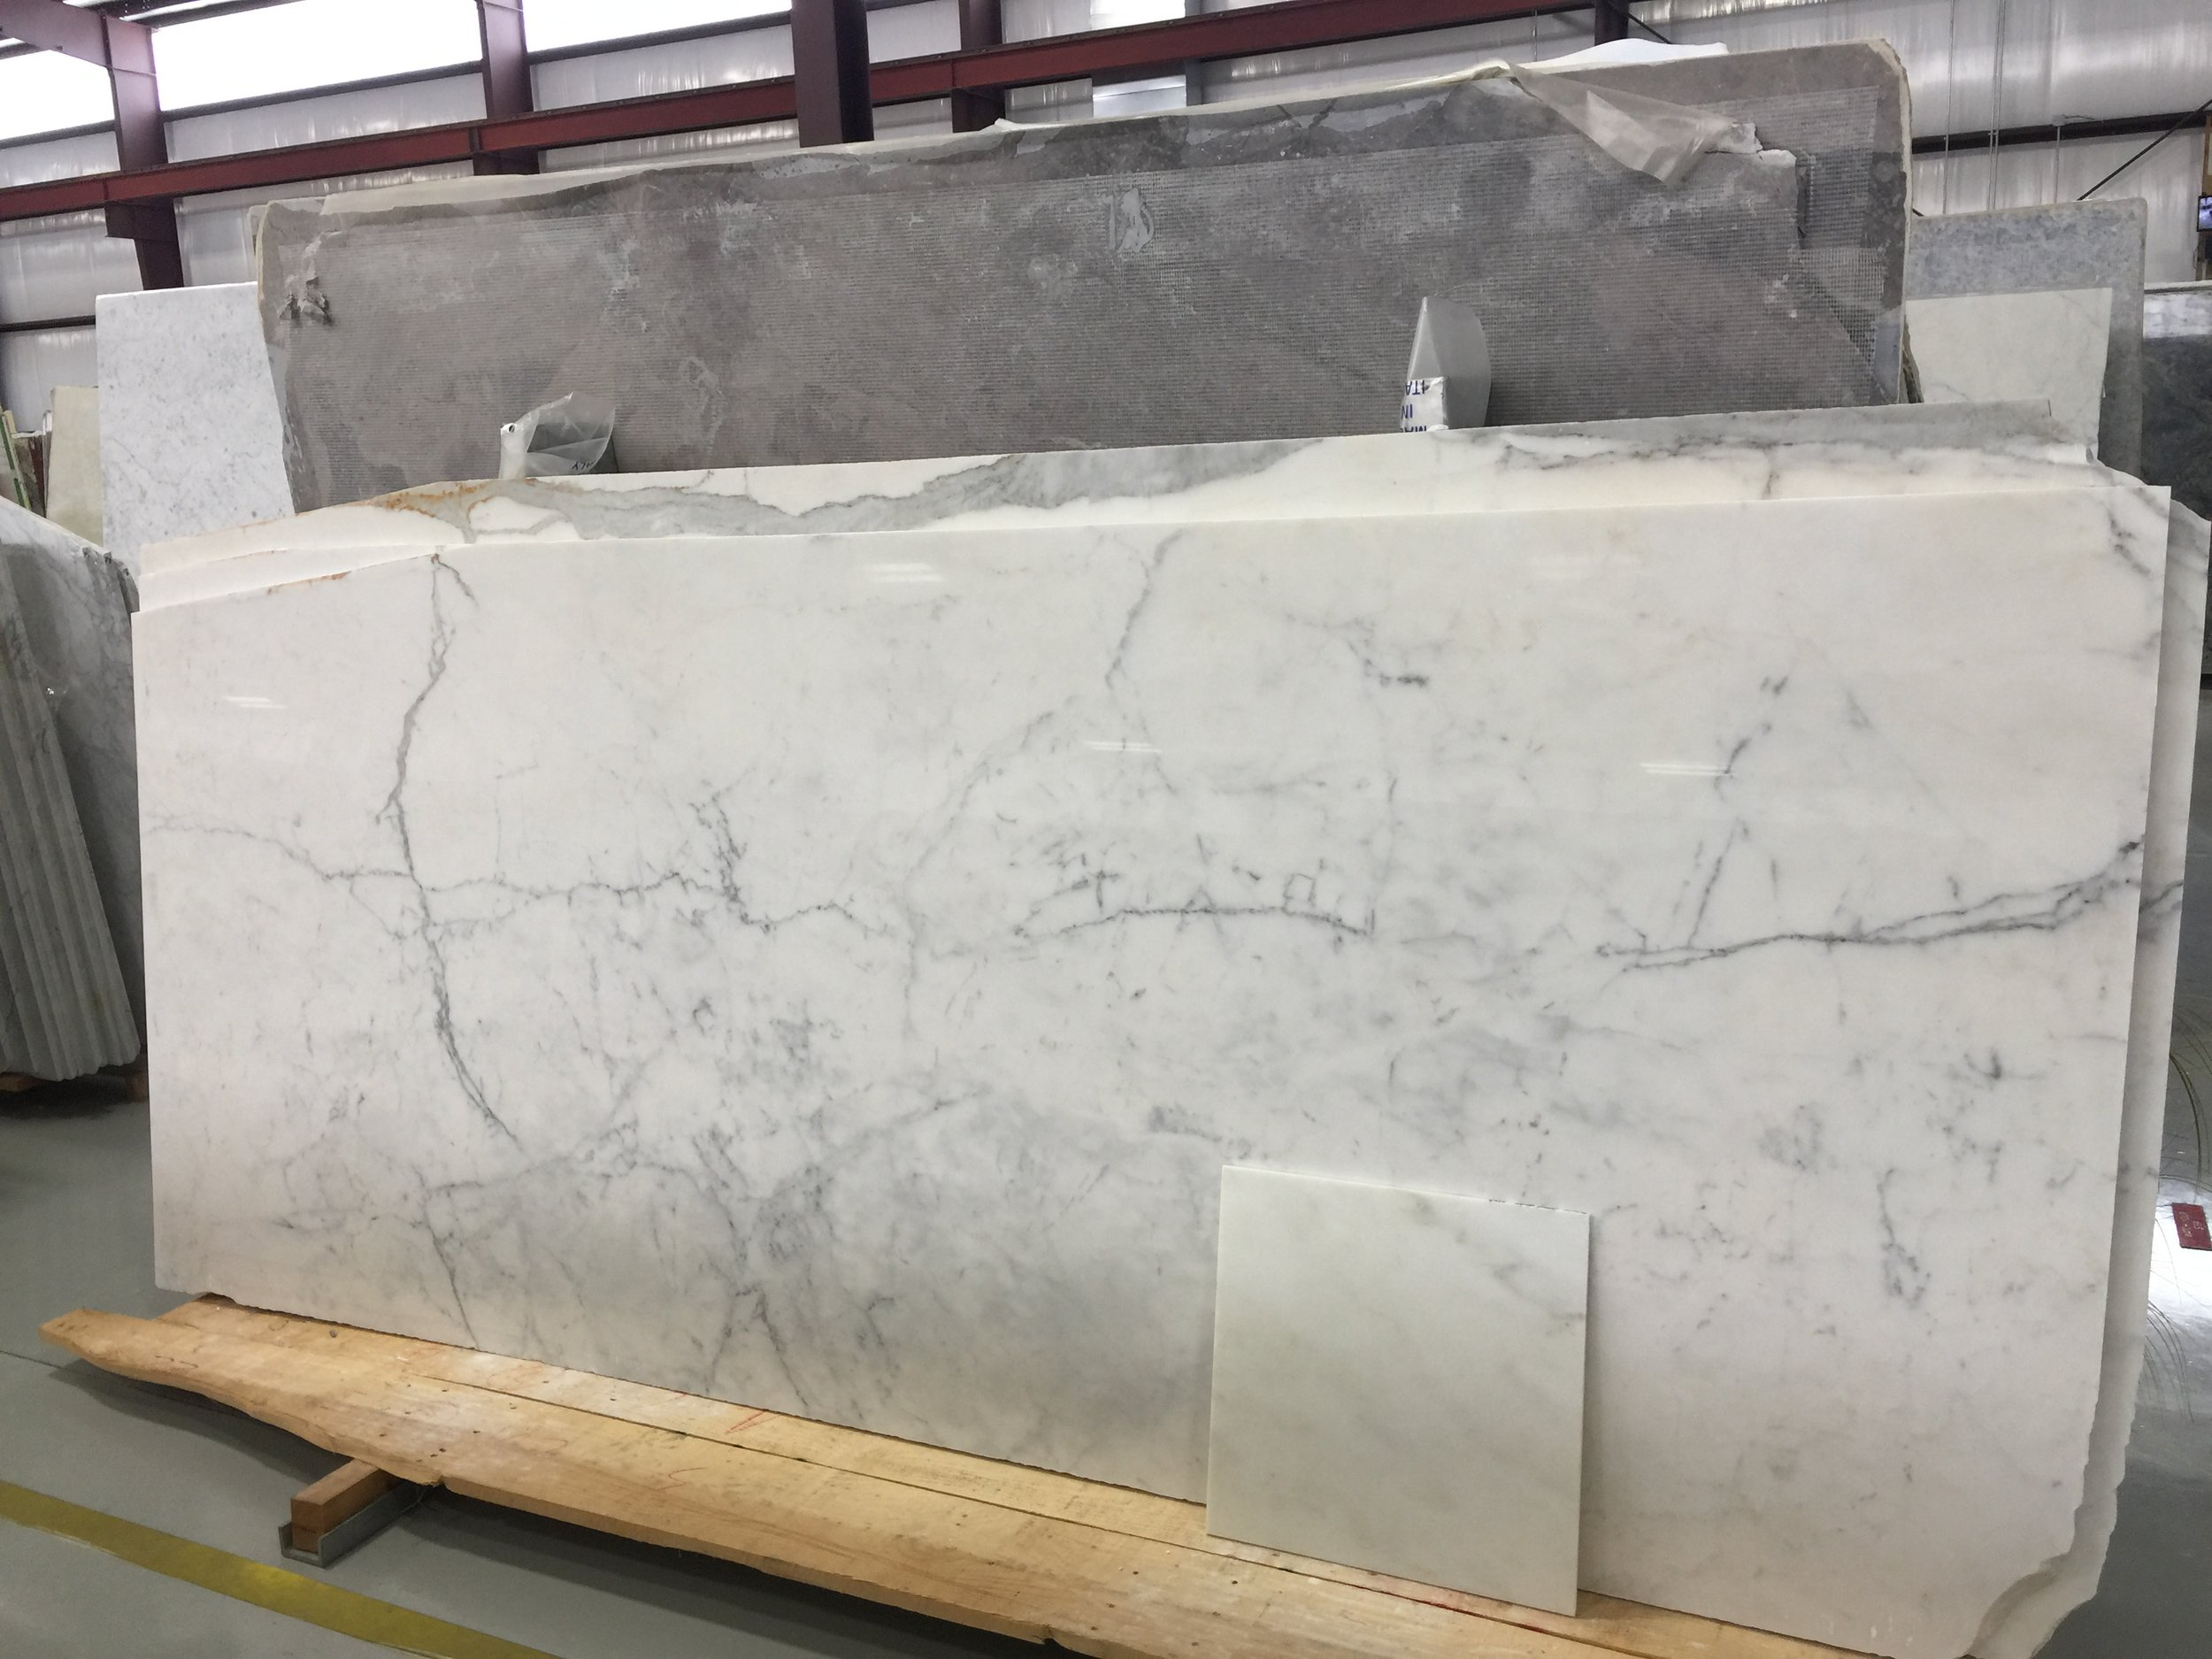 Marble slab for countertops in niches and powder room